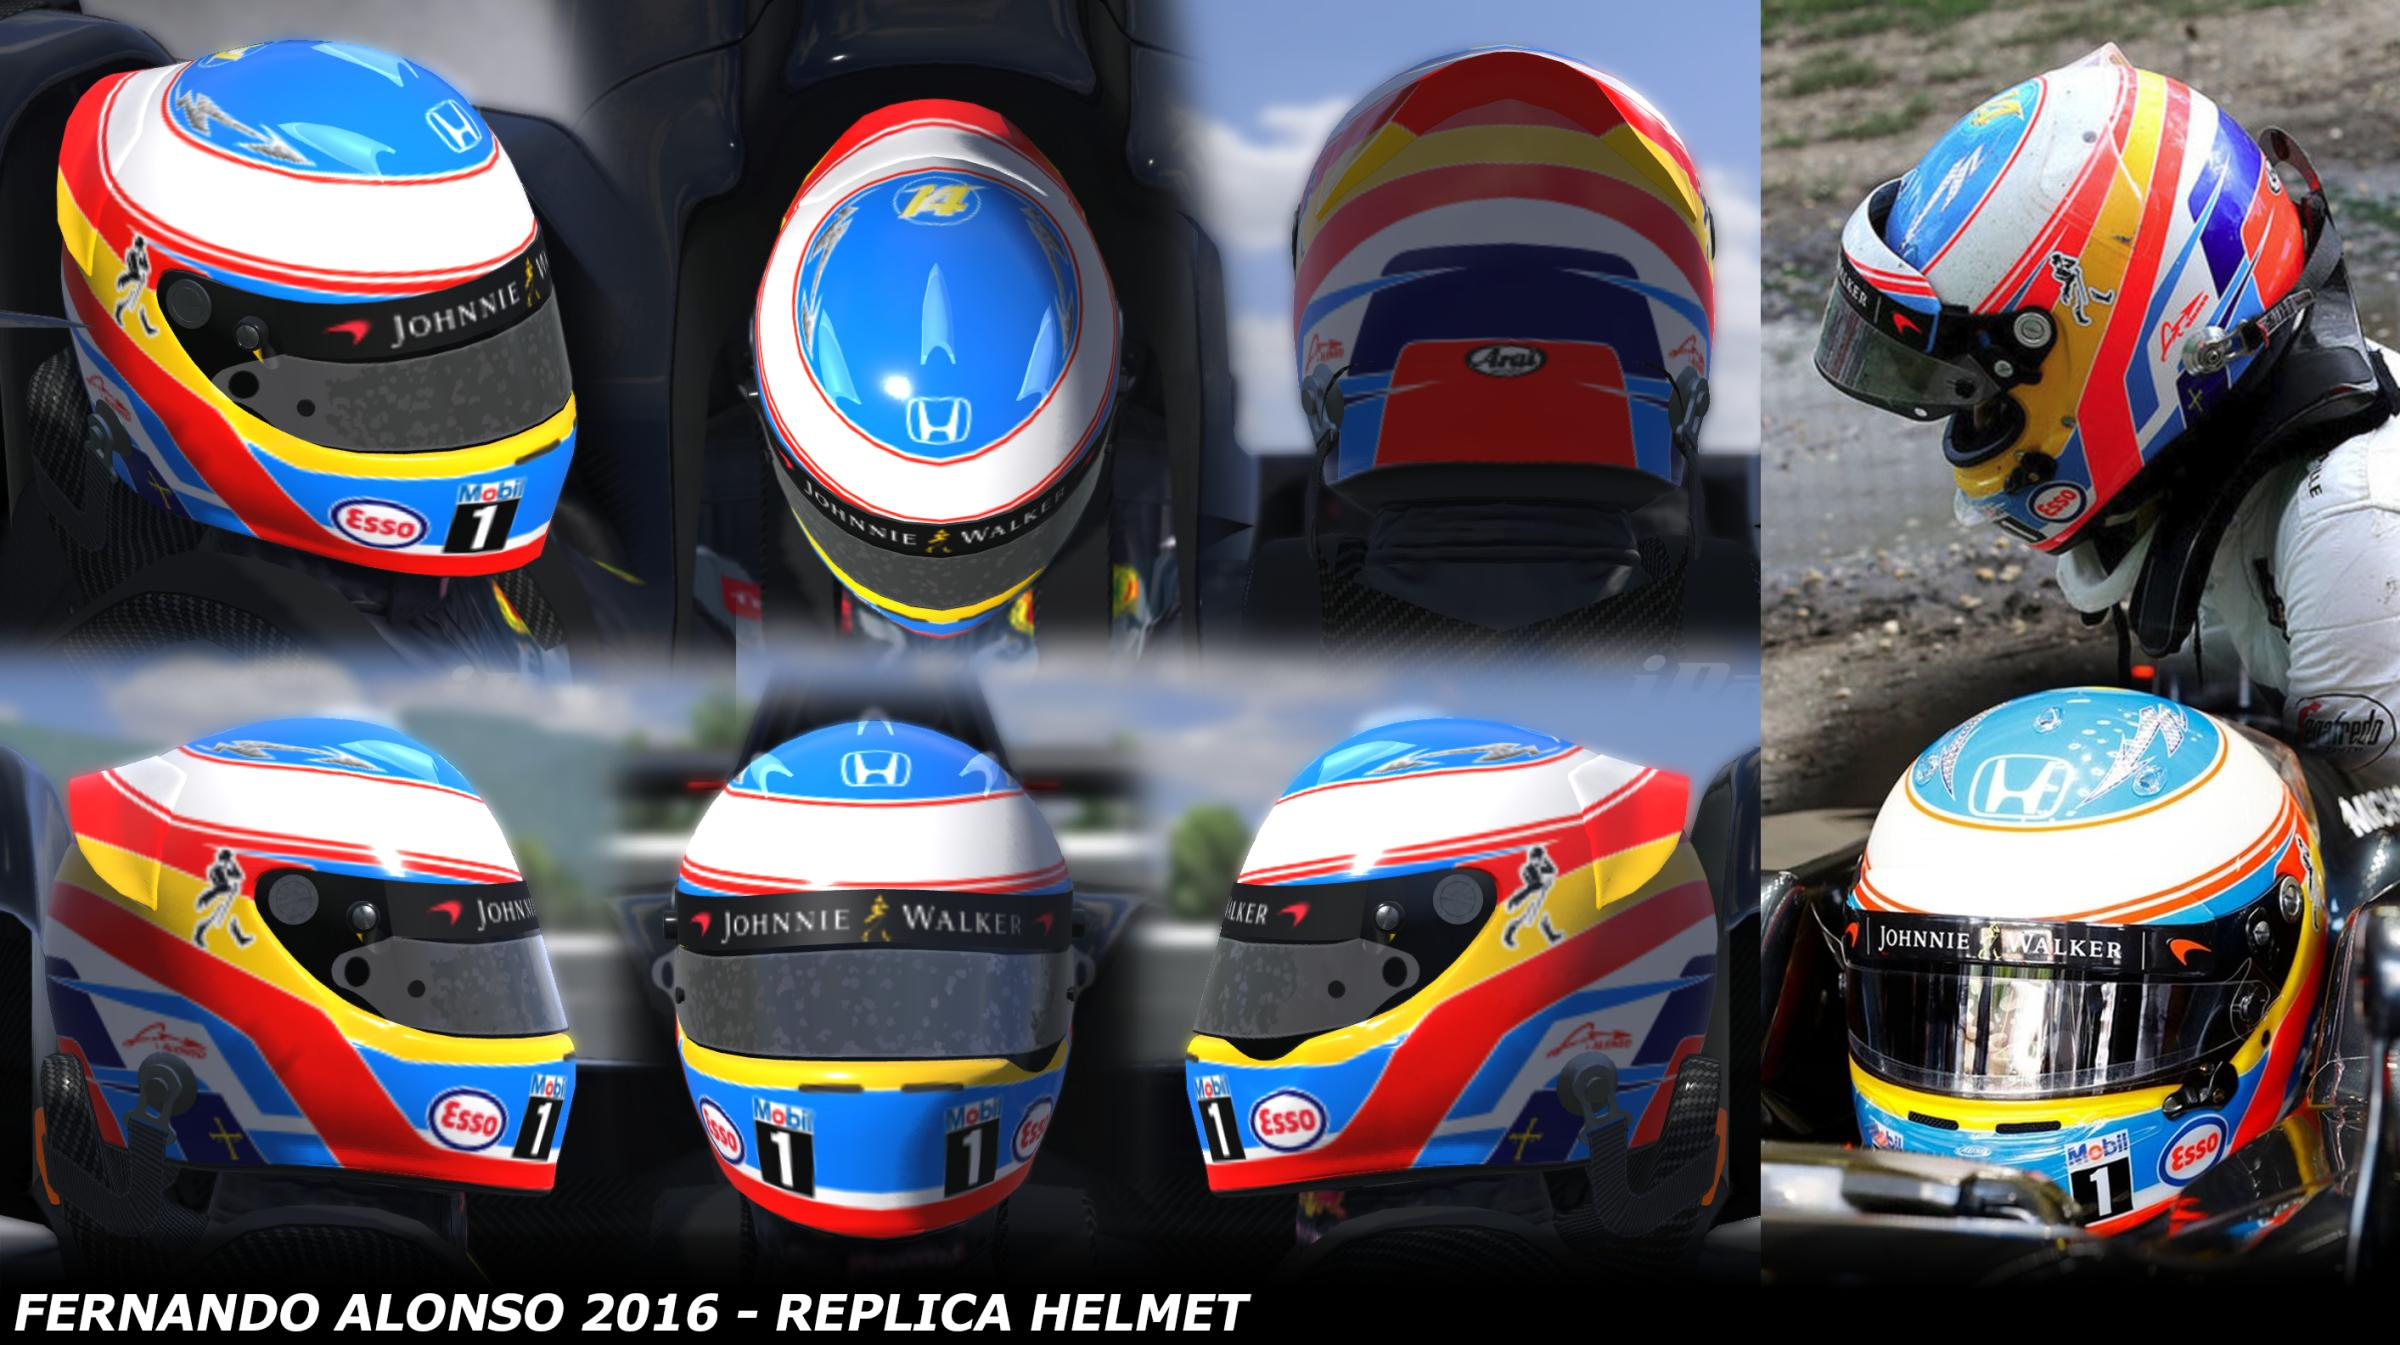 Preview of Fernando Alonso 2016 by George Simmons